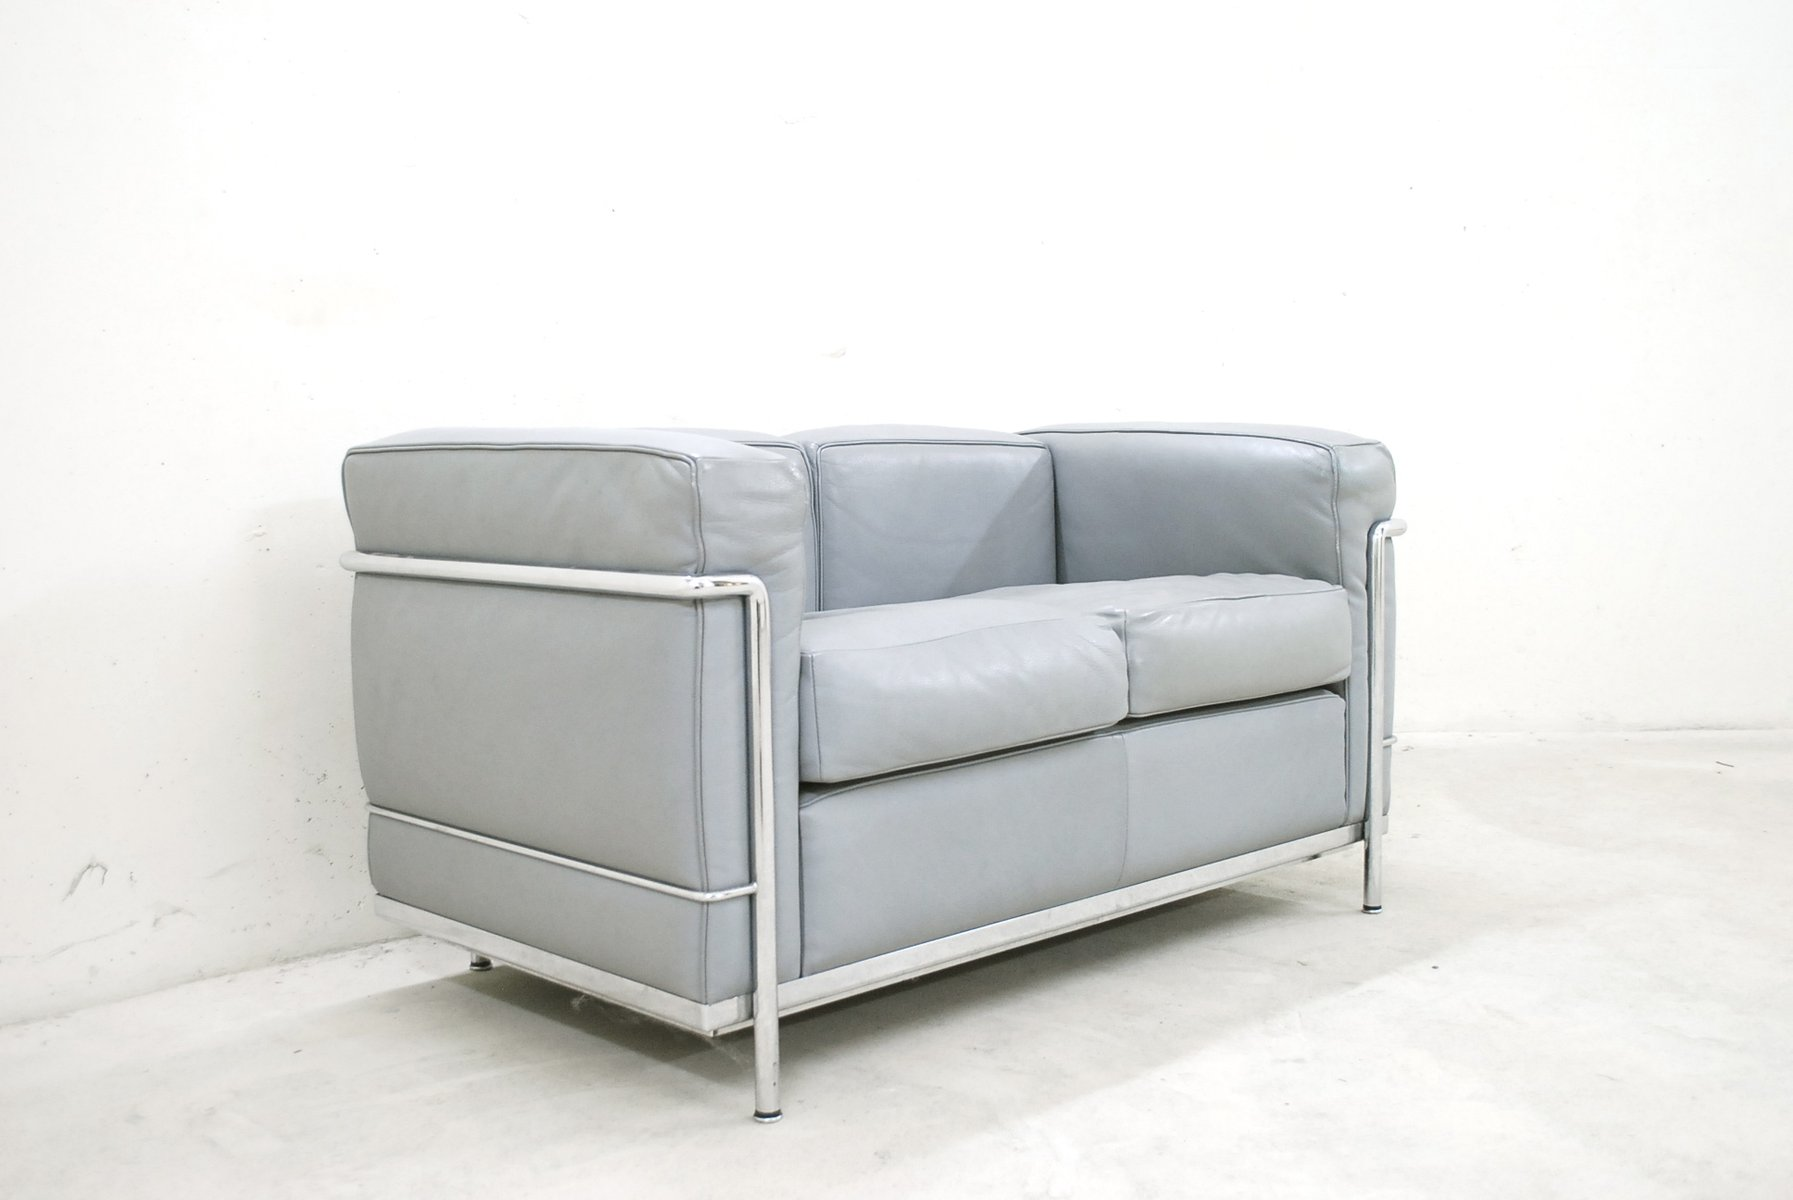 model lc2 leather sofa by le corbusier for cassina 1985 for sale